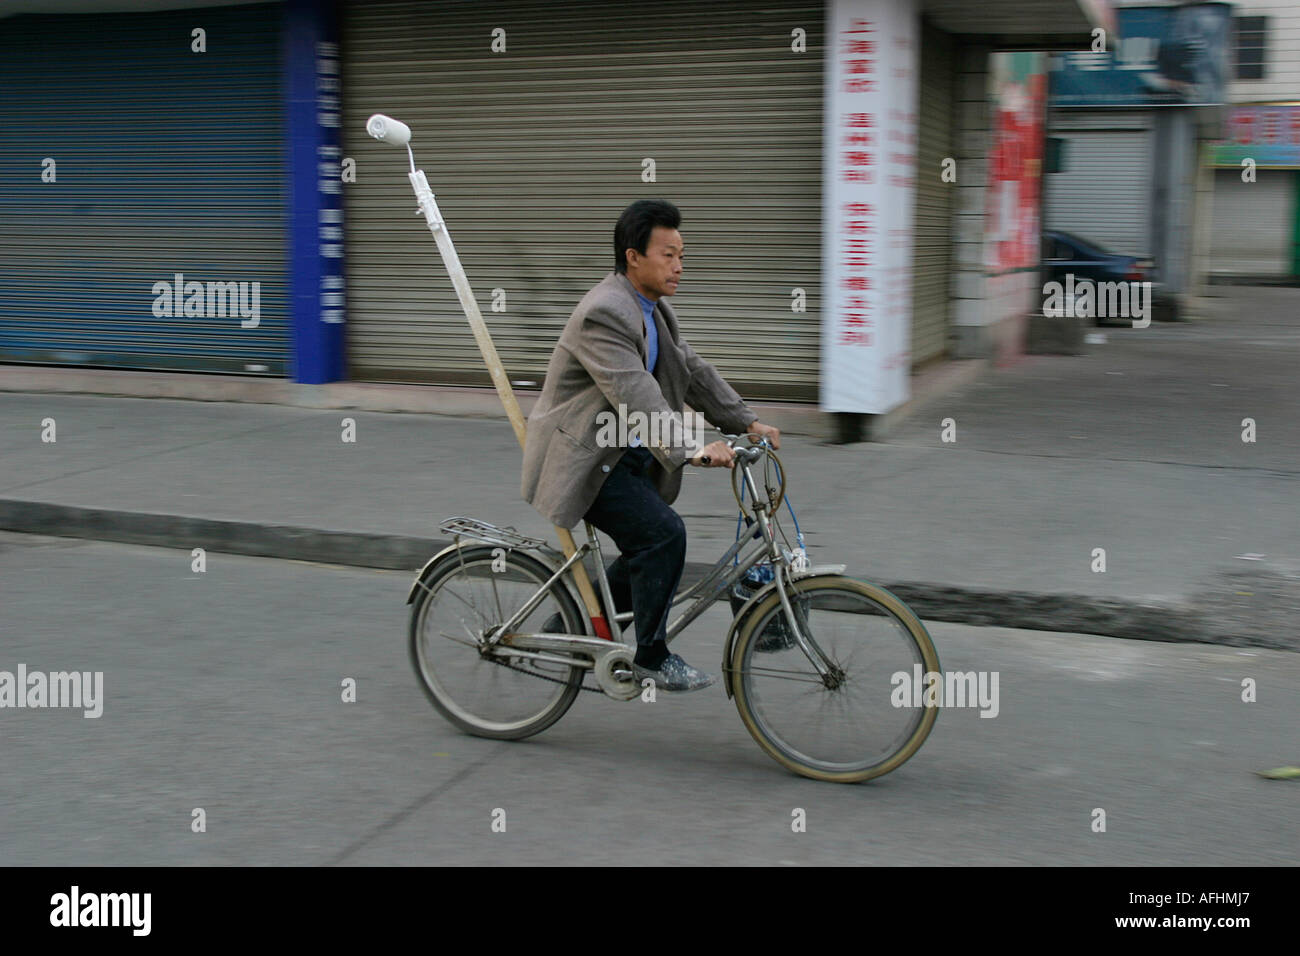 A decorator on his bicycle - Stock Image